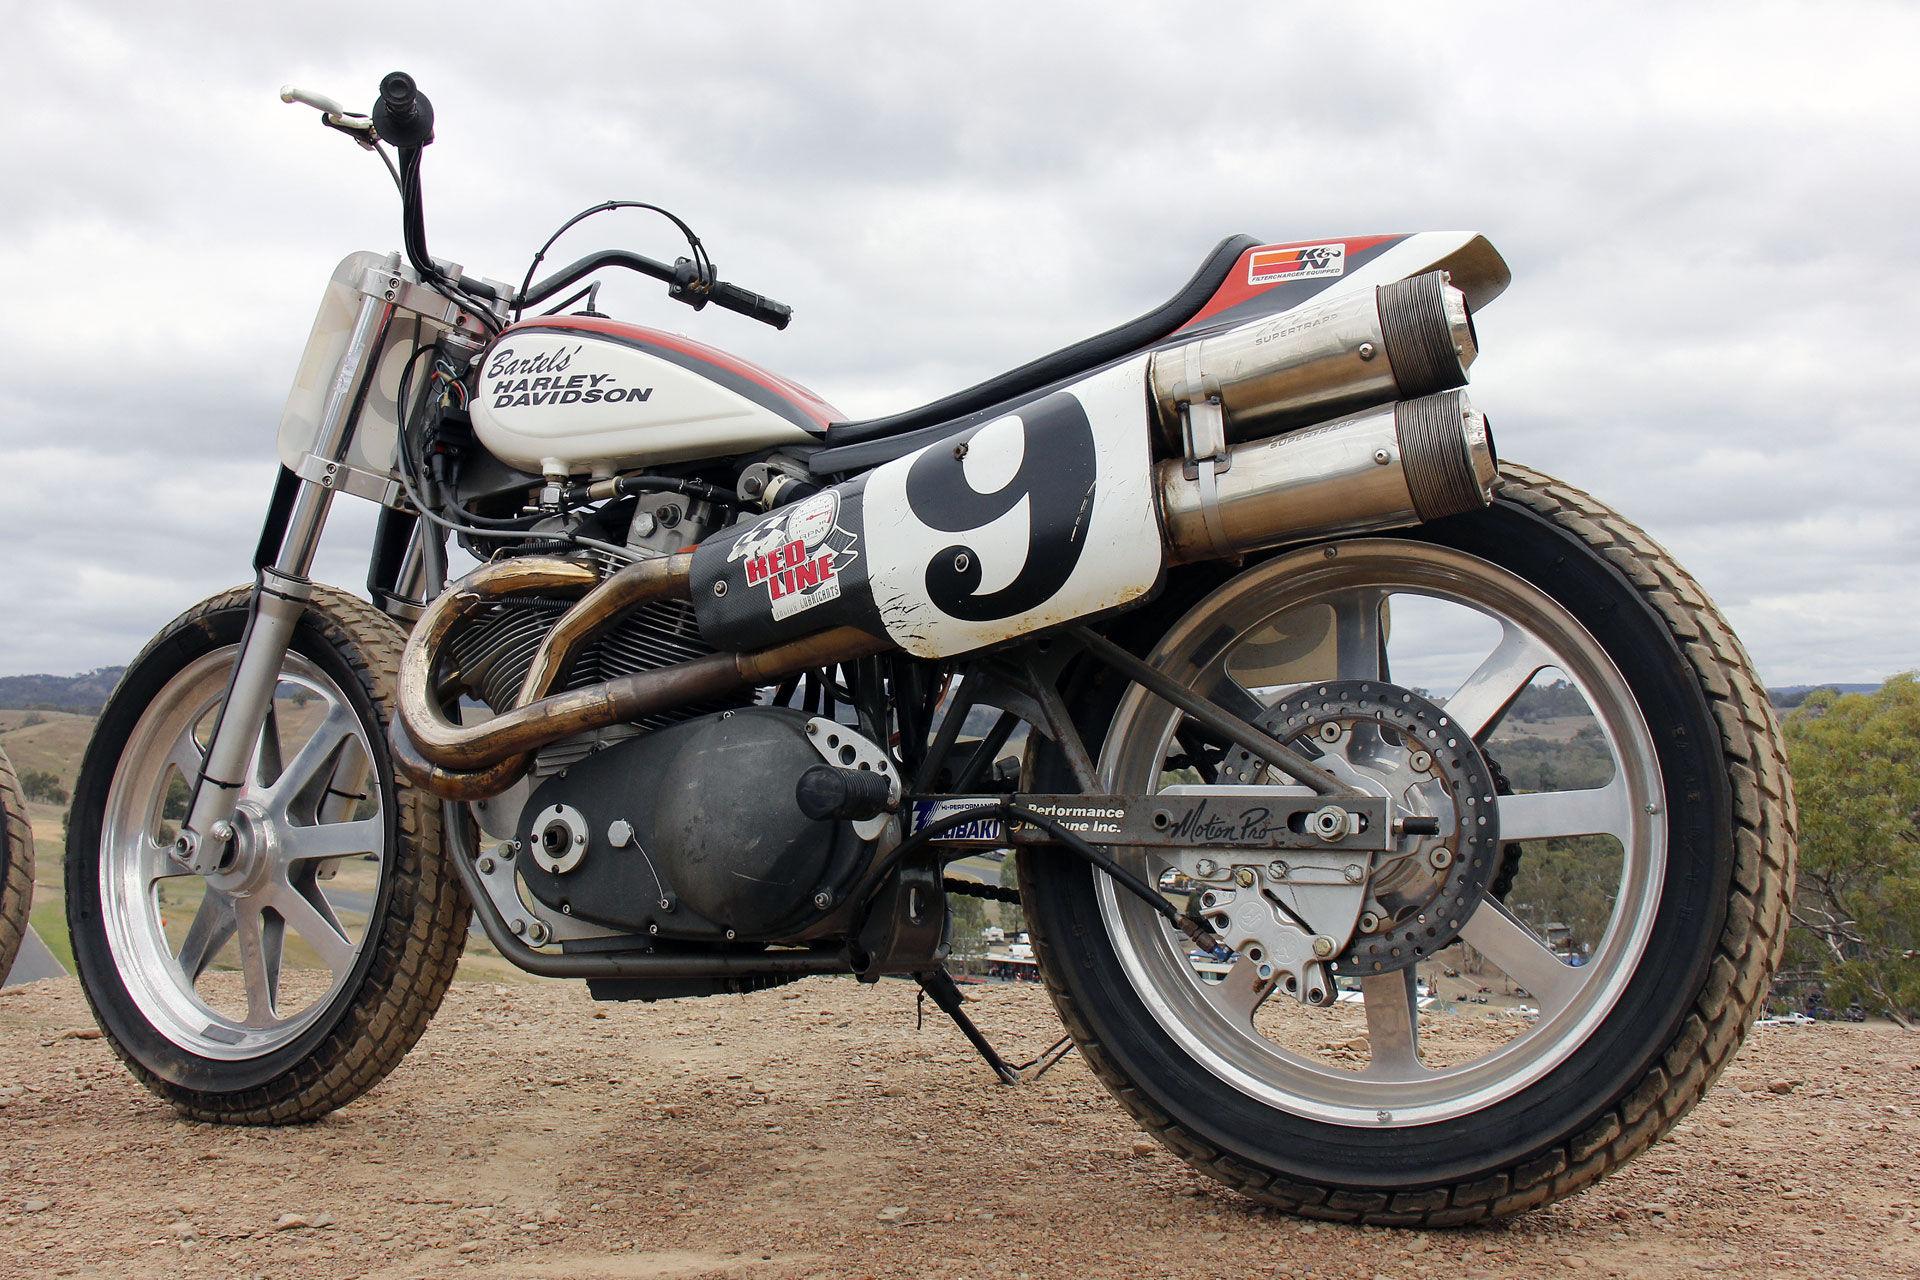 Eddy's XR 750 is a real glimpse into a competition machine of the era